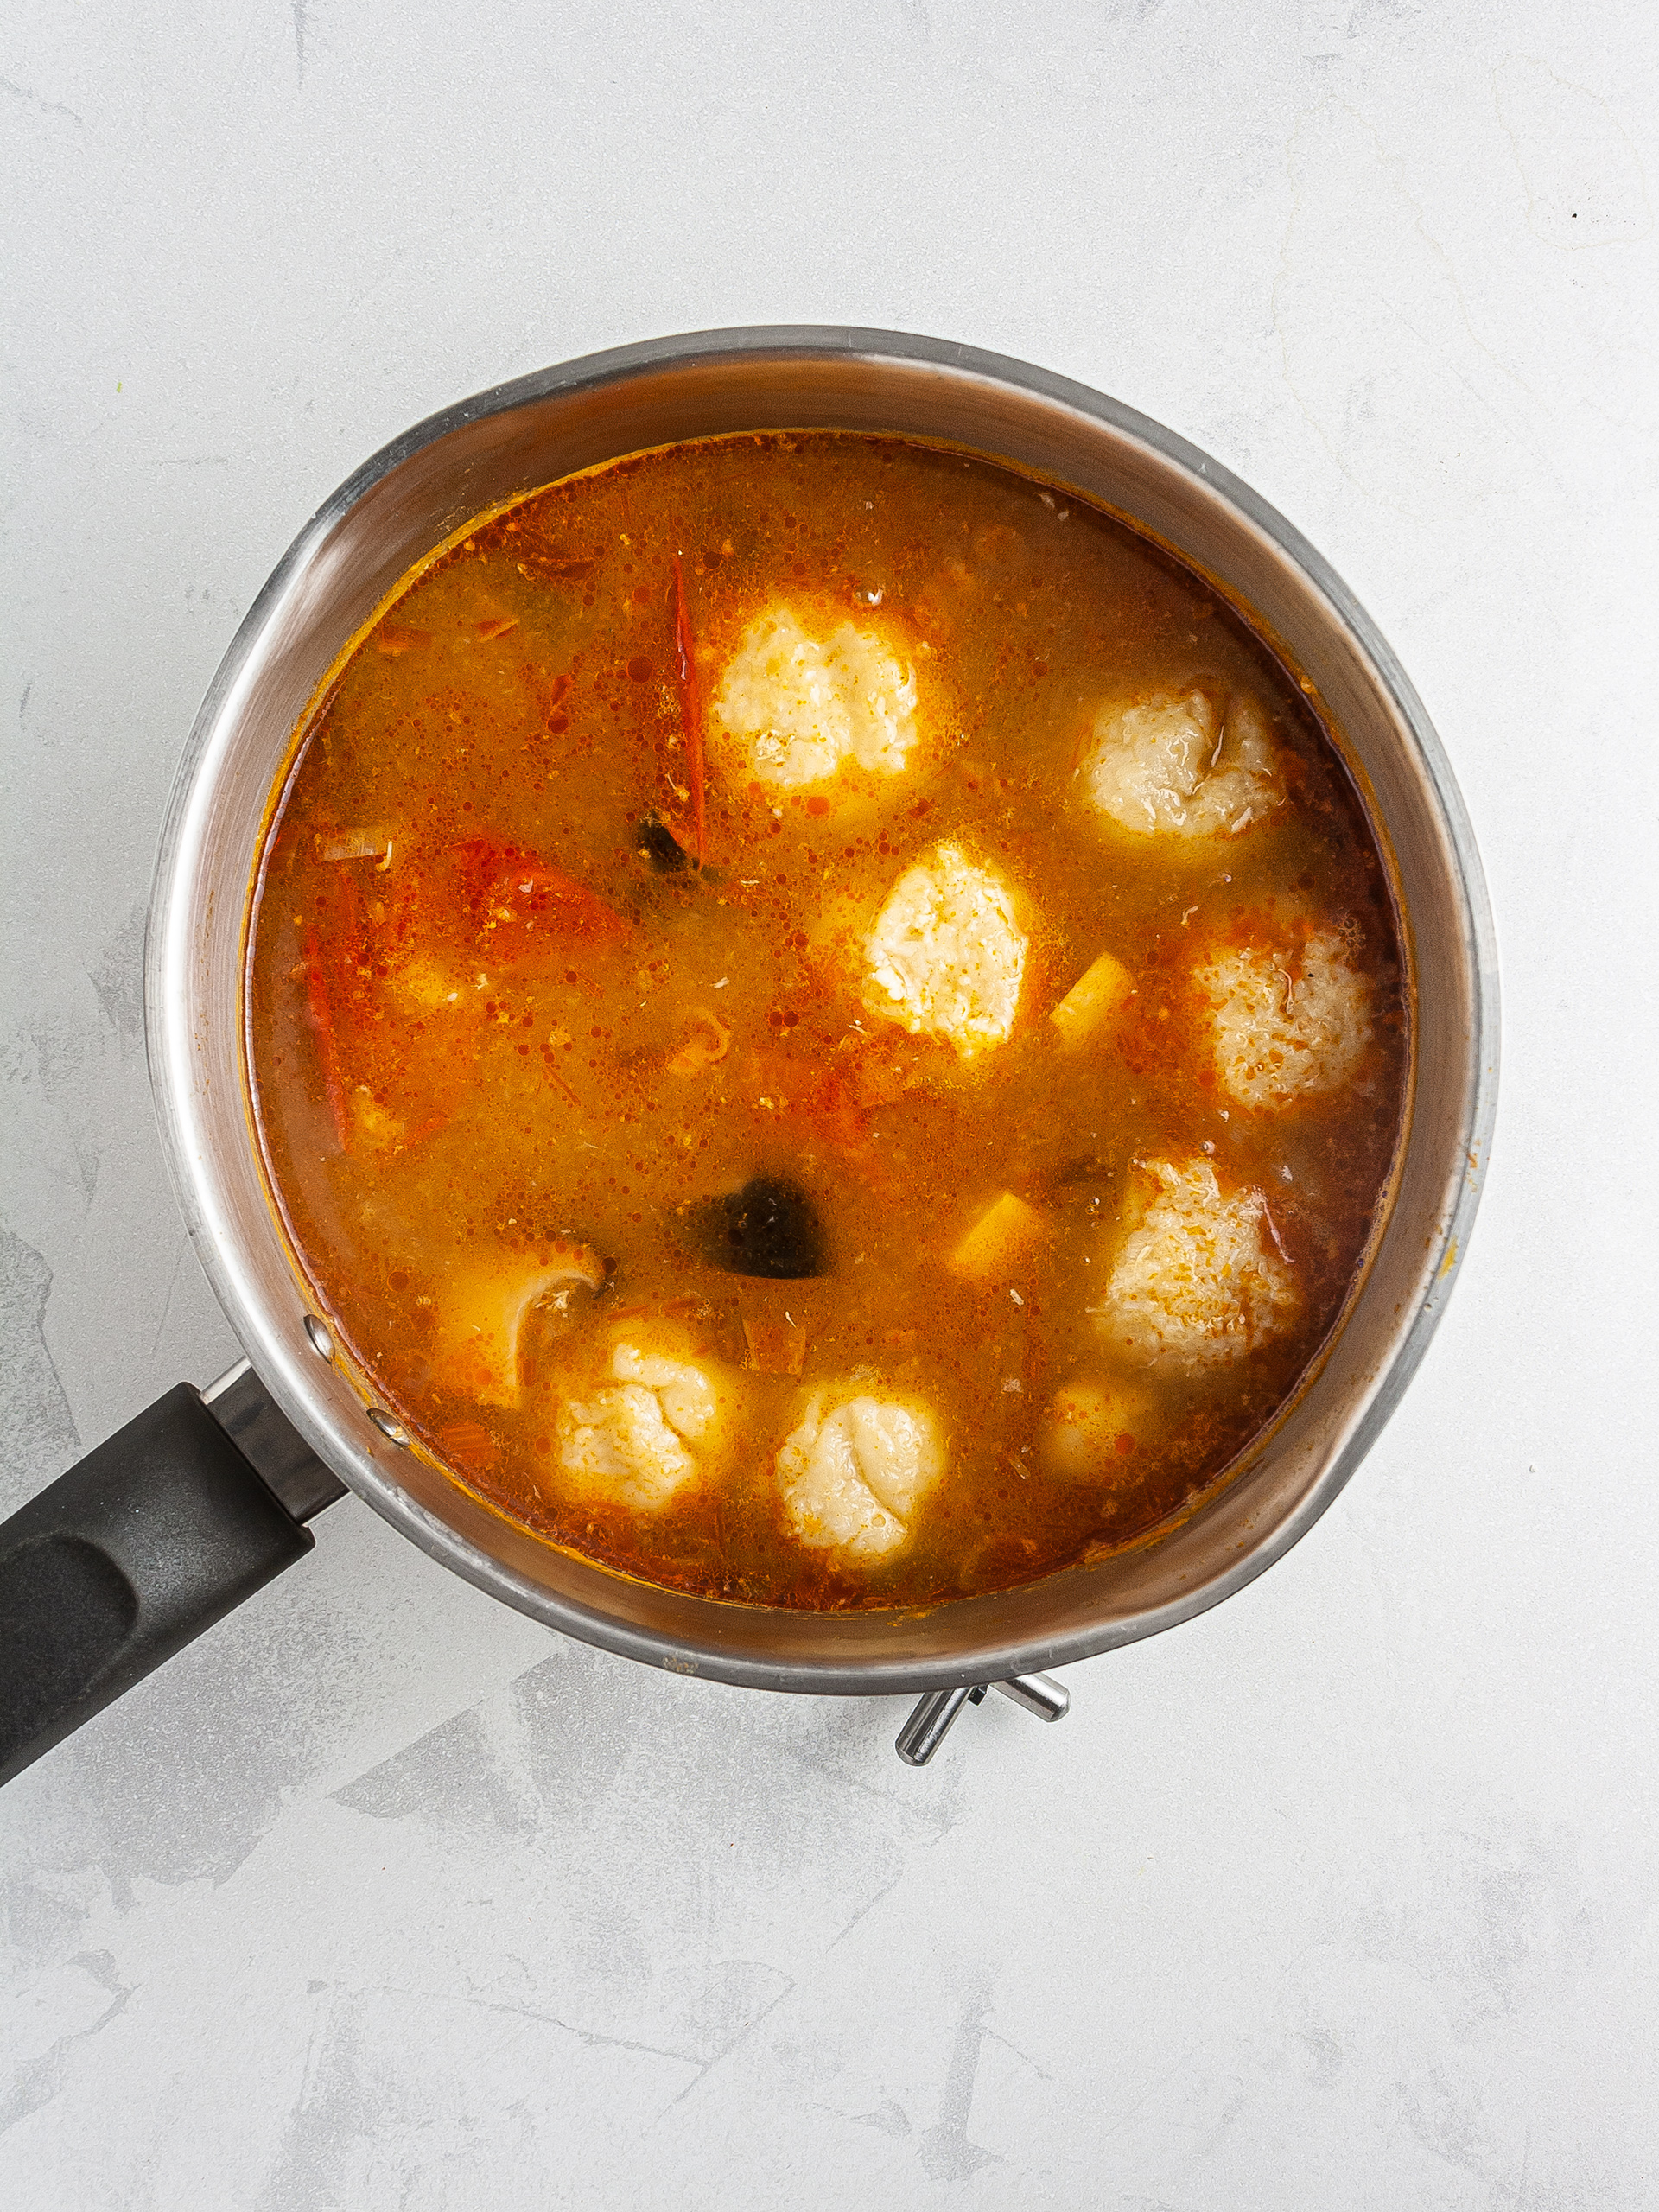 Crab balls in cooking in tomato stock